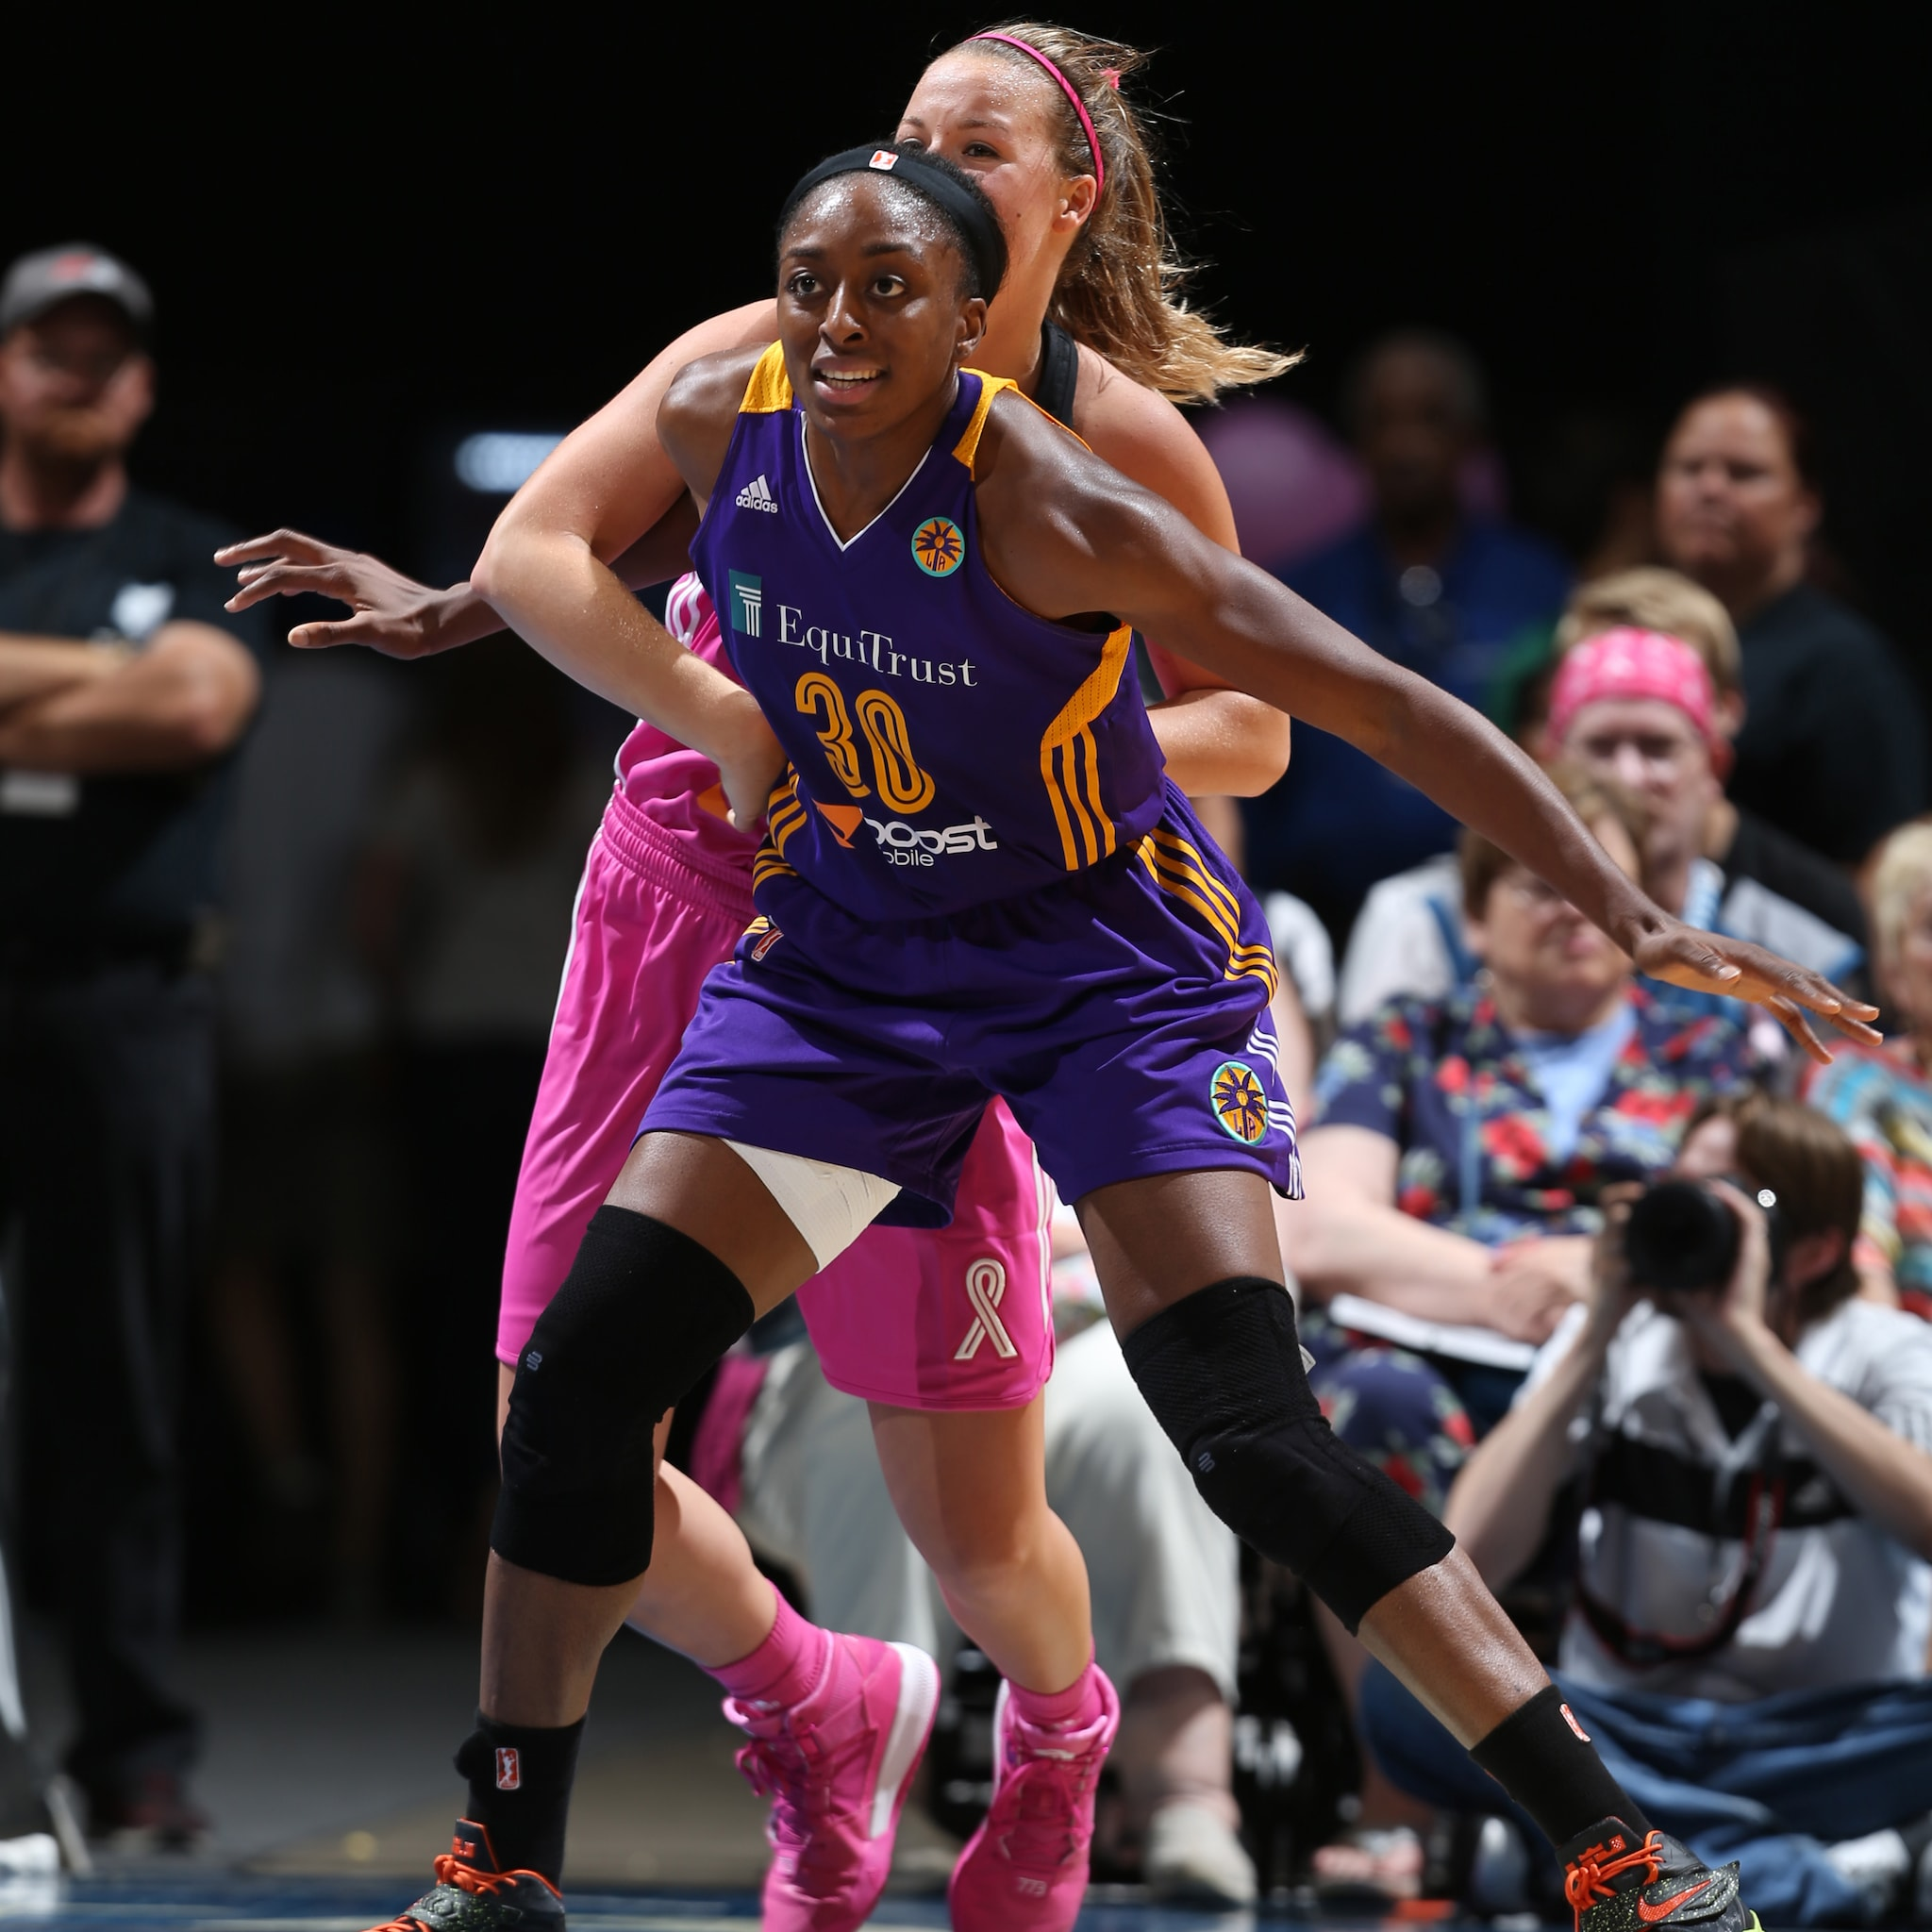 Sparks forward Nneka Ogwumike did her best to lead the Los Angeles to a win, but fell just short. Ogwumike had a team-high 18 points to go with her five rebounds.